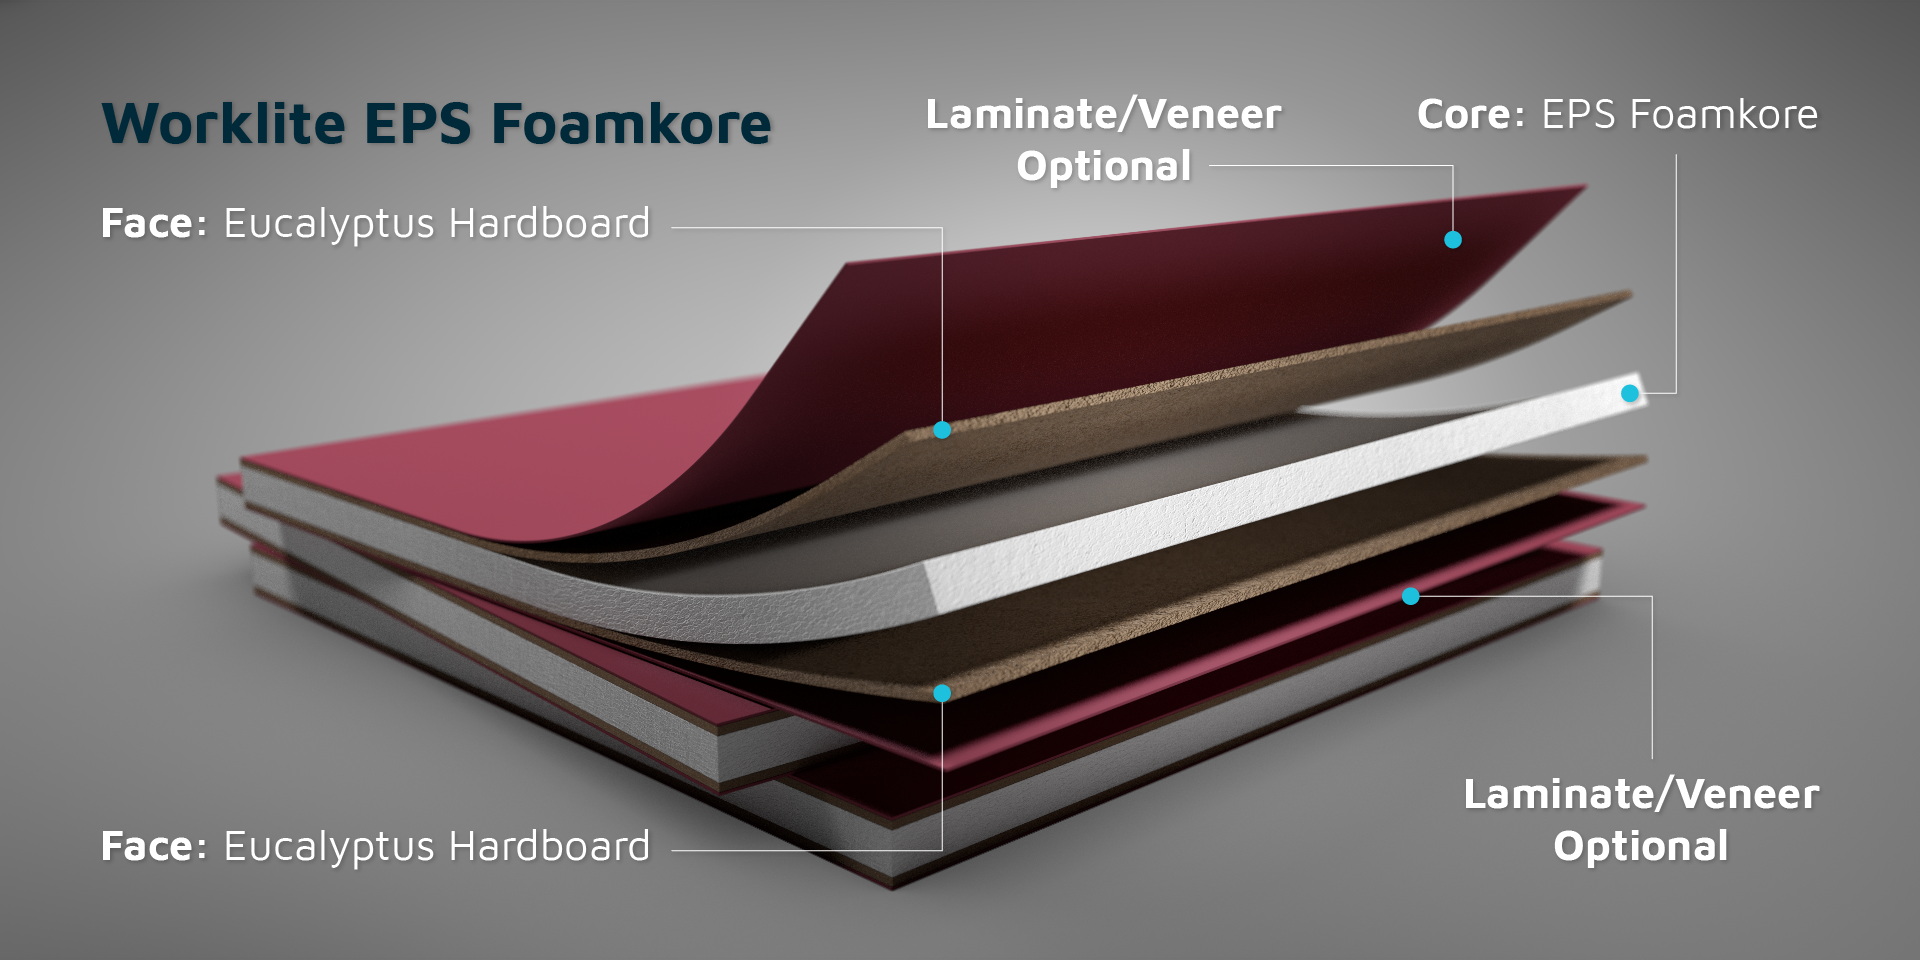 Worklite EPS Foamkore Lightweight Panel Illustration